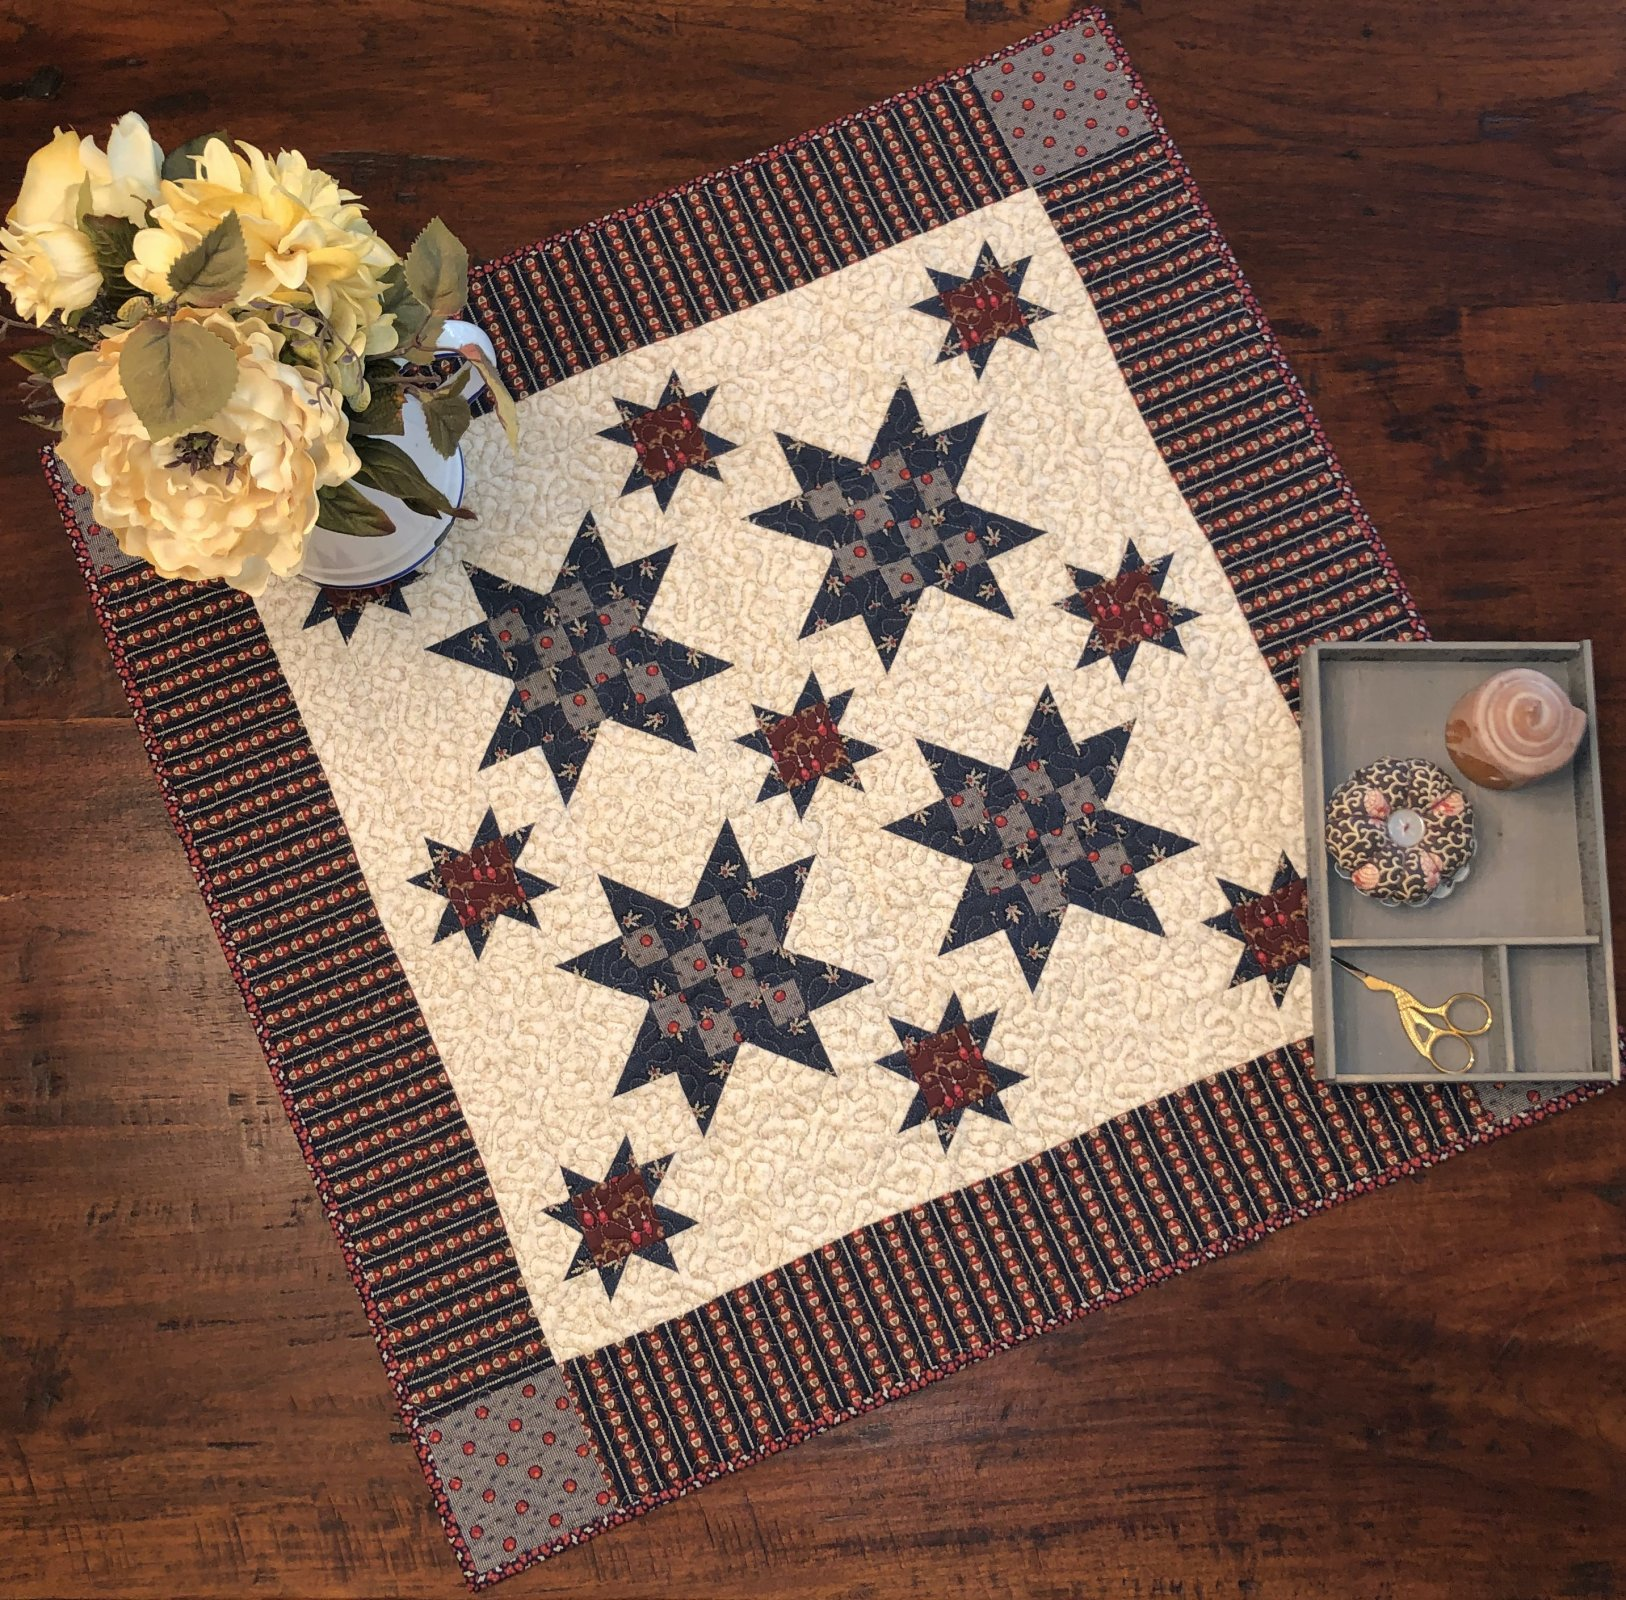 Patchwork Stars free digital download pattern